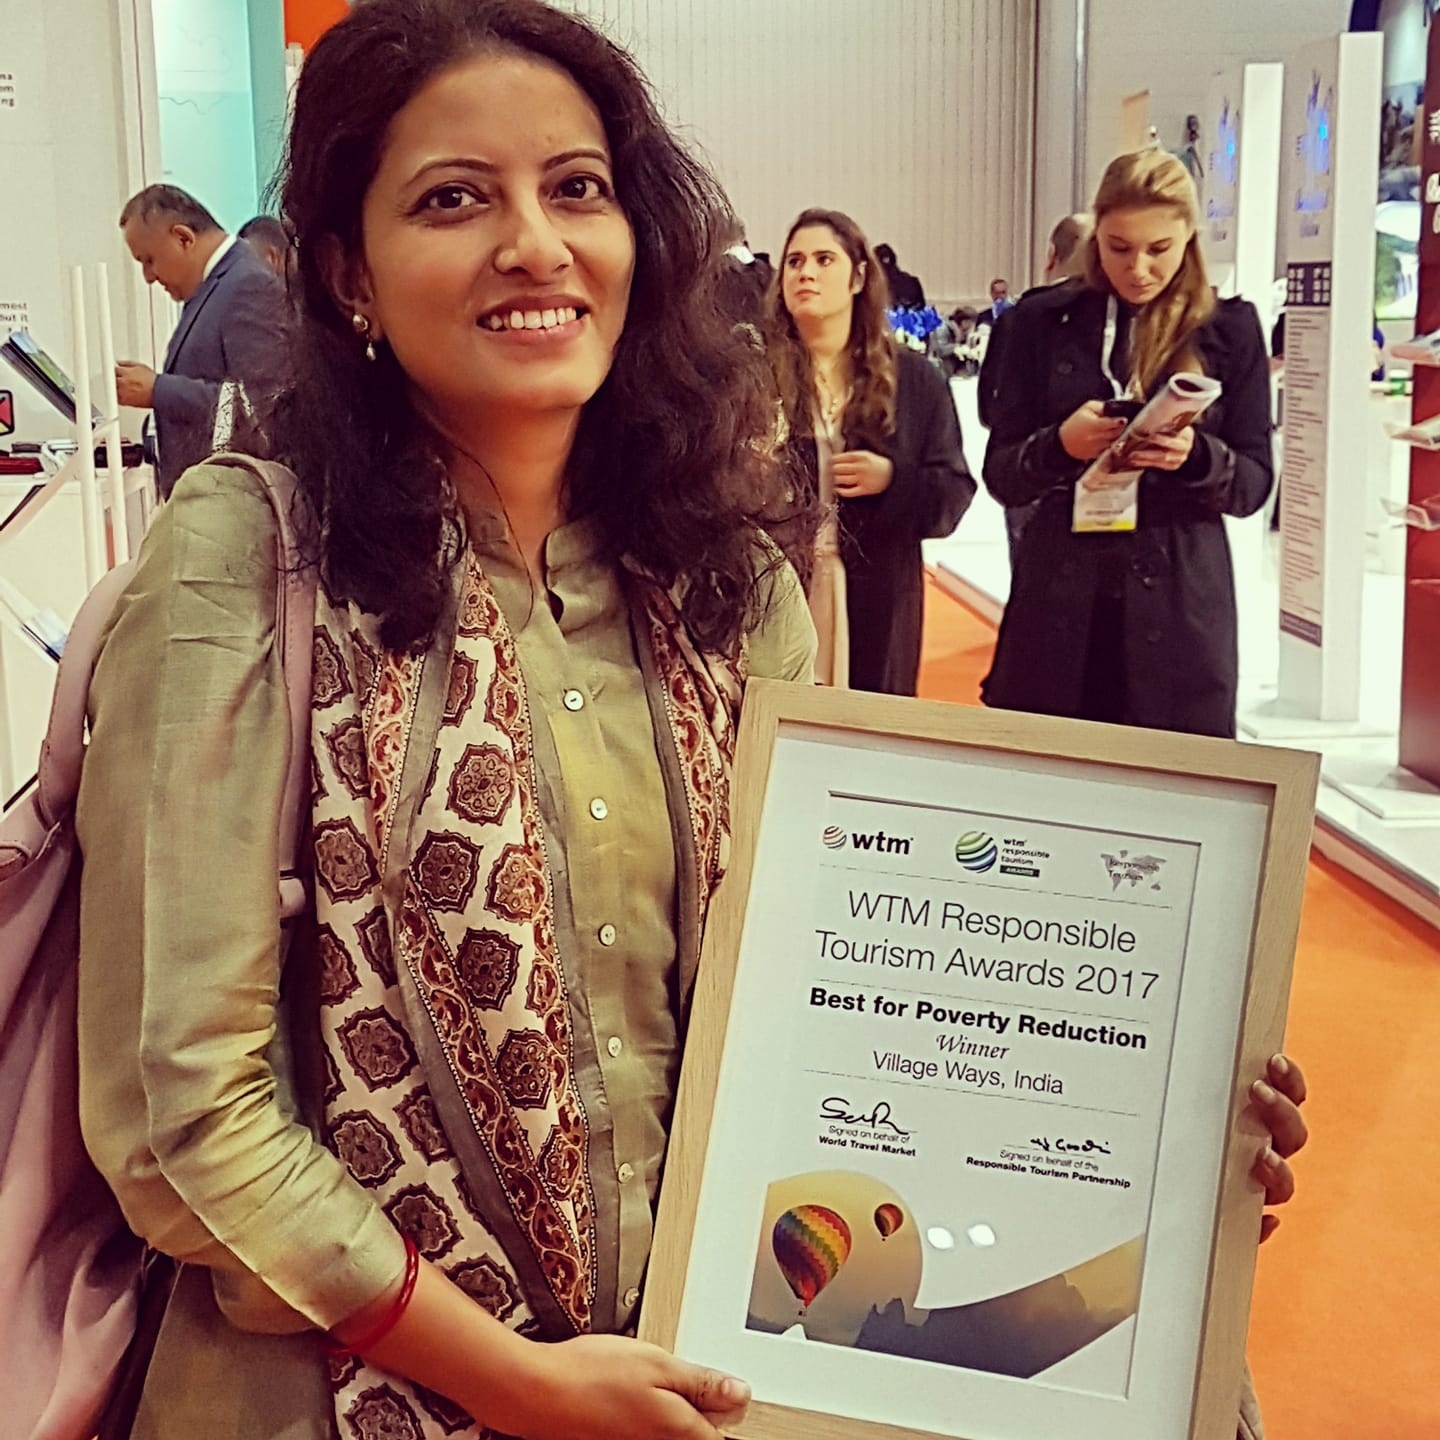 manisha accepting the world responsible tourism award for poverty reduction in 2017